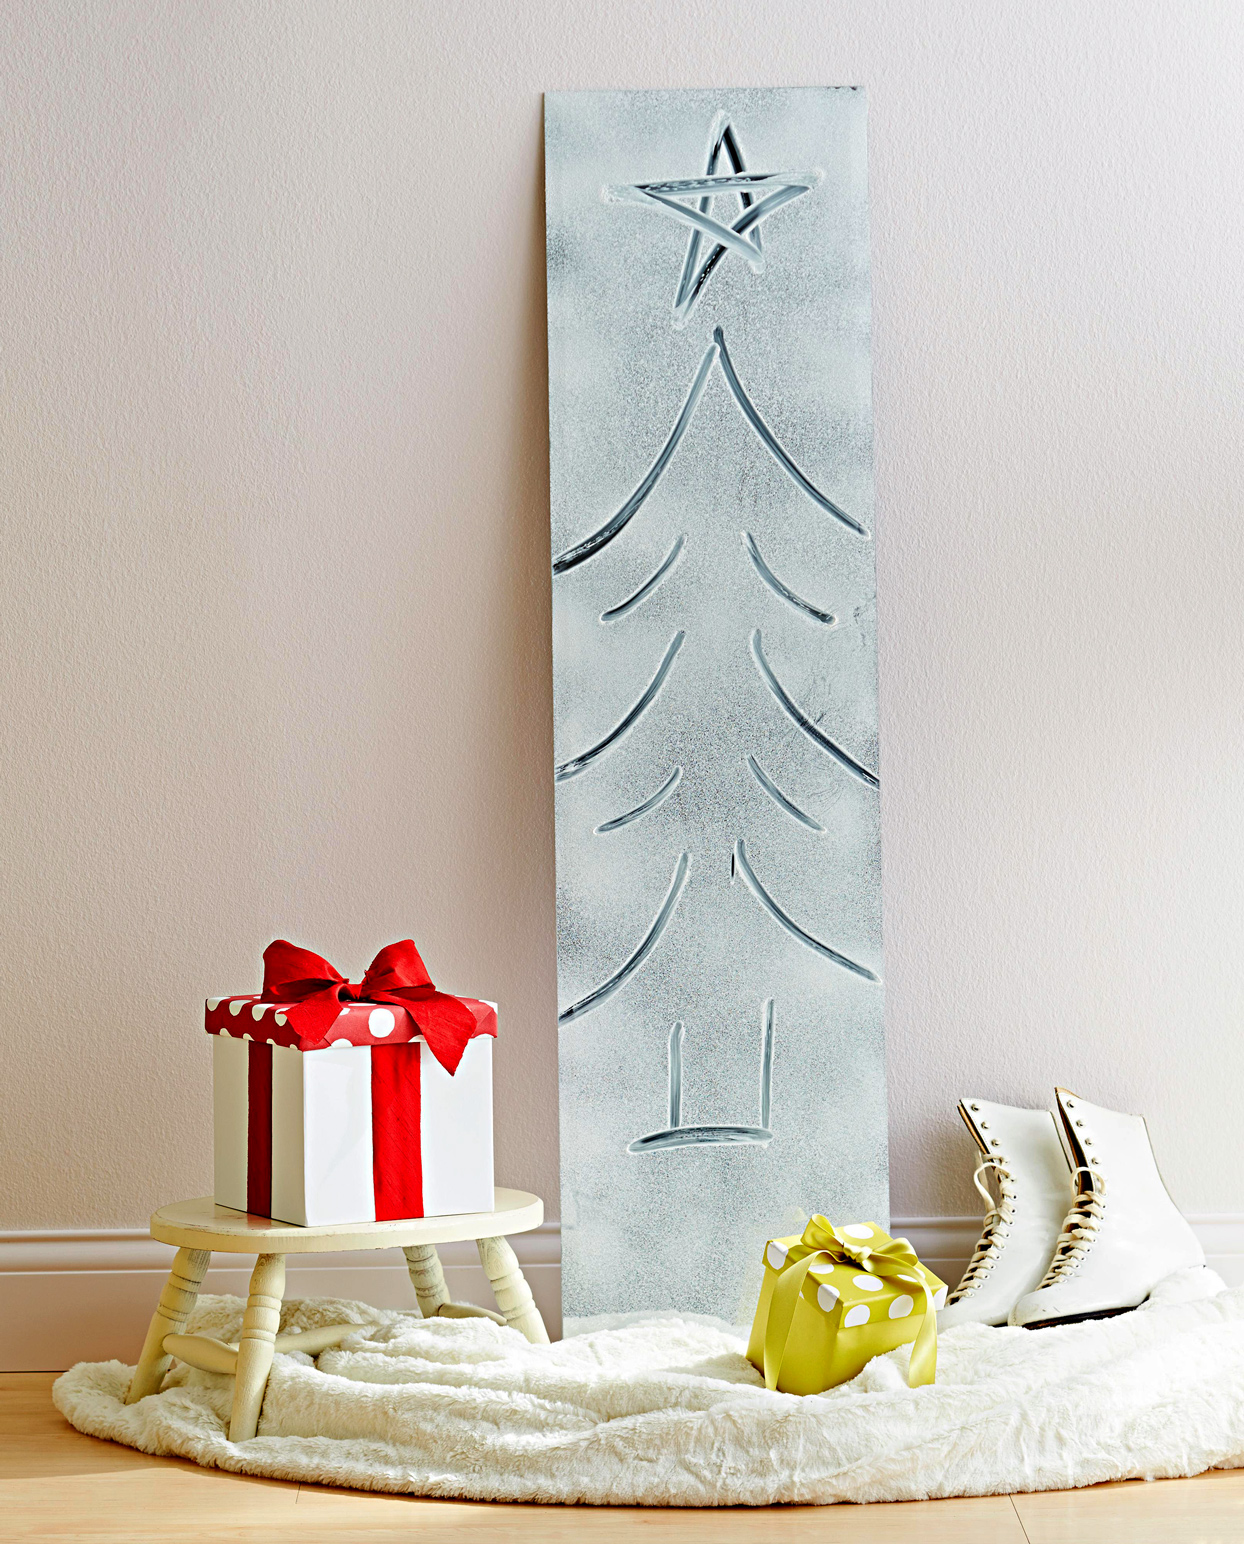 Frosted Mirror with a Christmas Tree